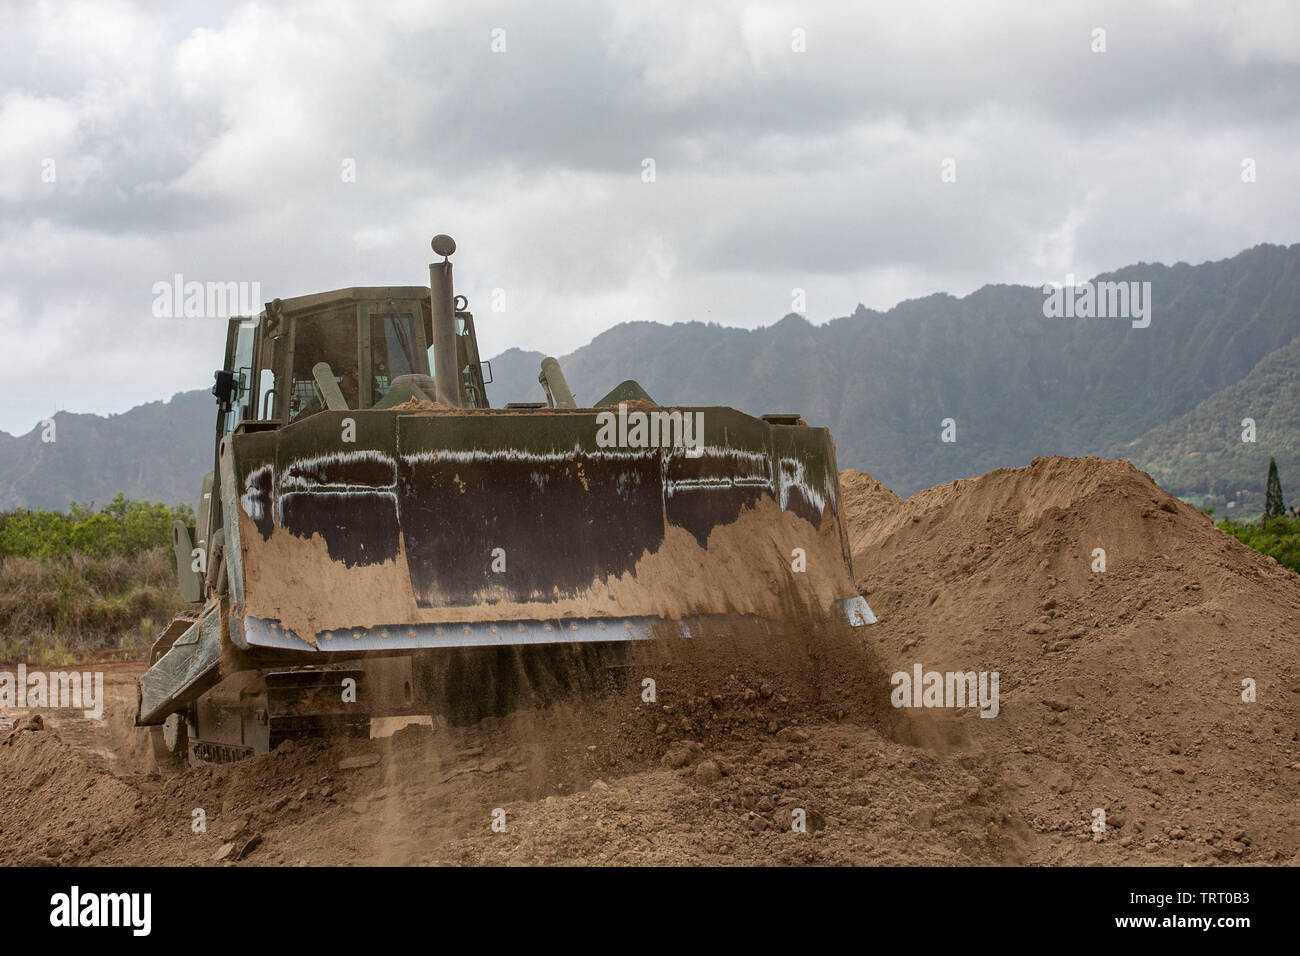 A U.S. Marine Medium Tractor Crawler assigned to Support Division, Marine Wing Support Detachment (MWSD) 24, excavates a training area, Marine Corps Training Area Bellows, June 6, 2019. Combat engineers created an anti-tank ditch and berm utilizing heavy earth movers, while the unit also completed scenarios for tactical convoy movements with simulated Improvised Explosive Devices and role players. This training assists MWSD-24 to sustain operational readiness when operating overseas. (U.S. Marine Corps photo by Sgt. Jesus Sepulveda Torres) - Stock Image